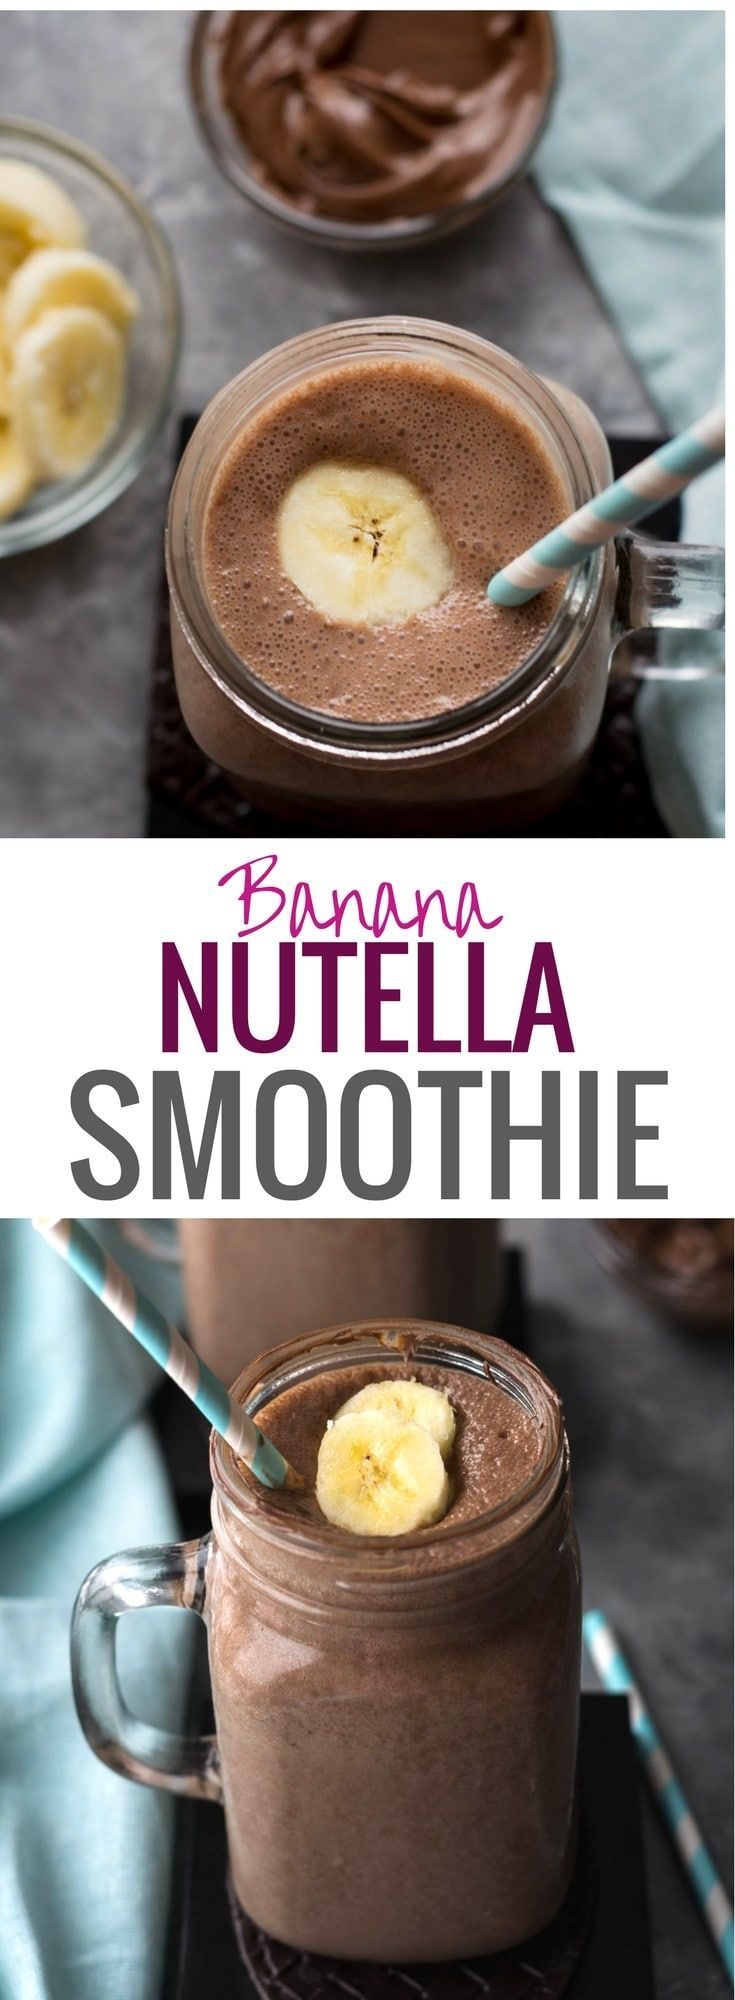 Banana Nutella Smoothie Recipe - Your kids will love this delicious Banana Nutella Smoothie Recipe - a healthy-ish drink made from bananas and milk with a hint of Nutella and hot cocoa. Make breakfast exciting for your family. #Nutella #Recipes #breakfast